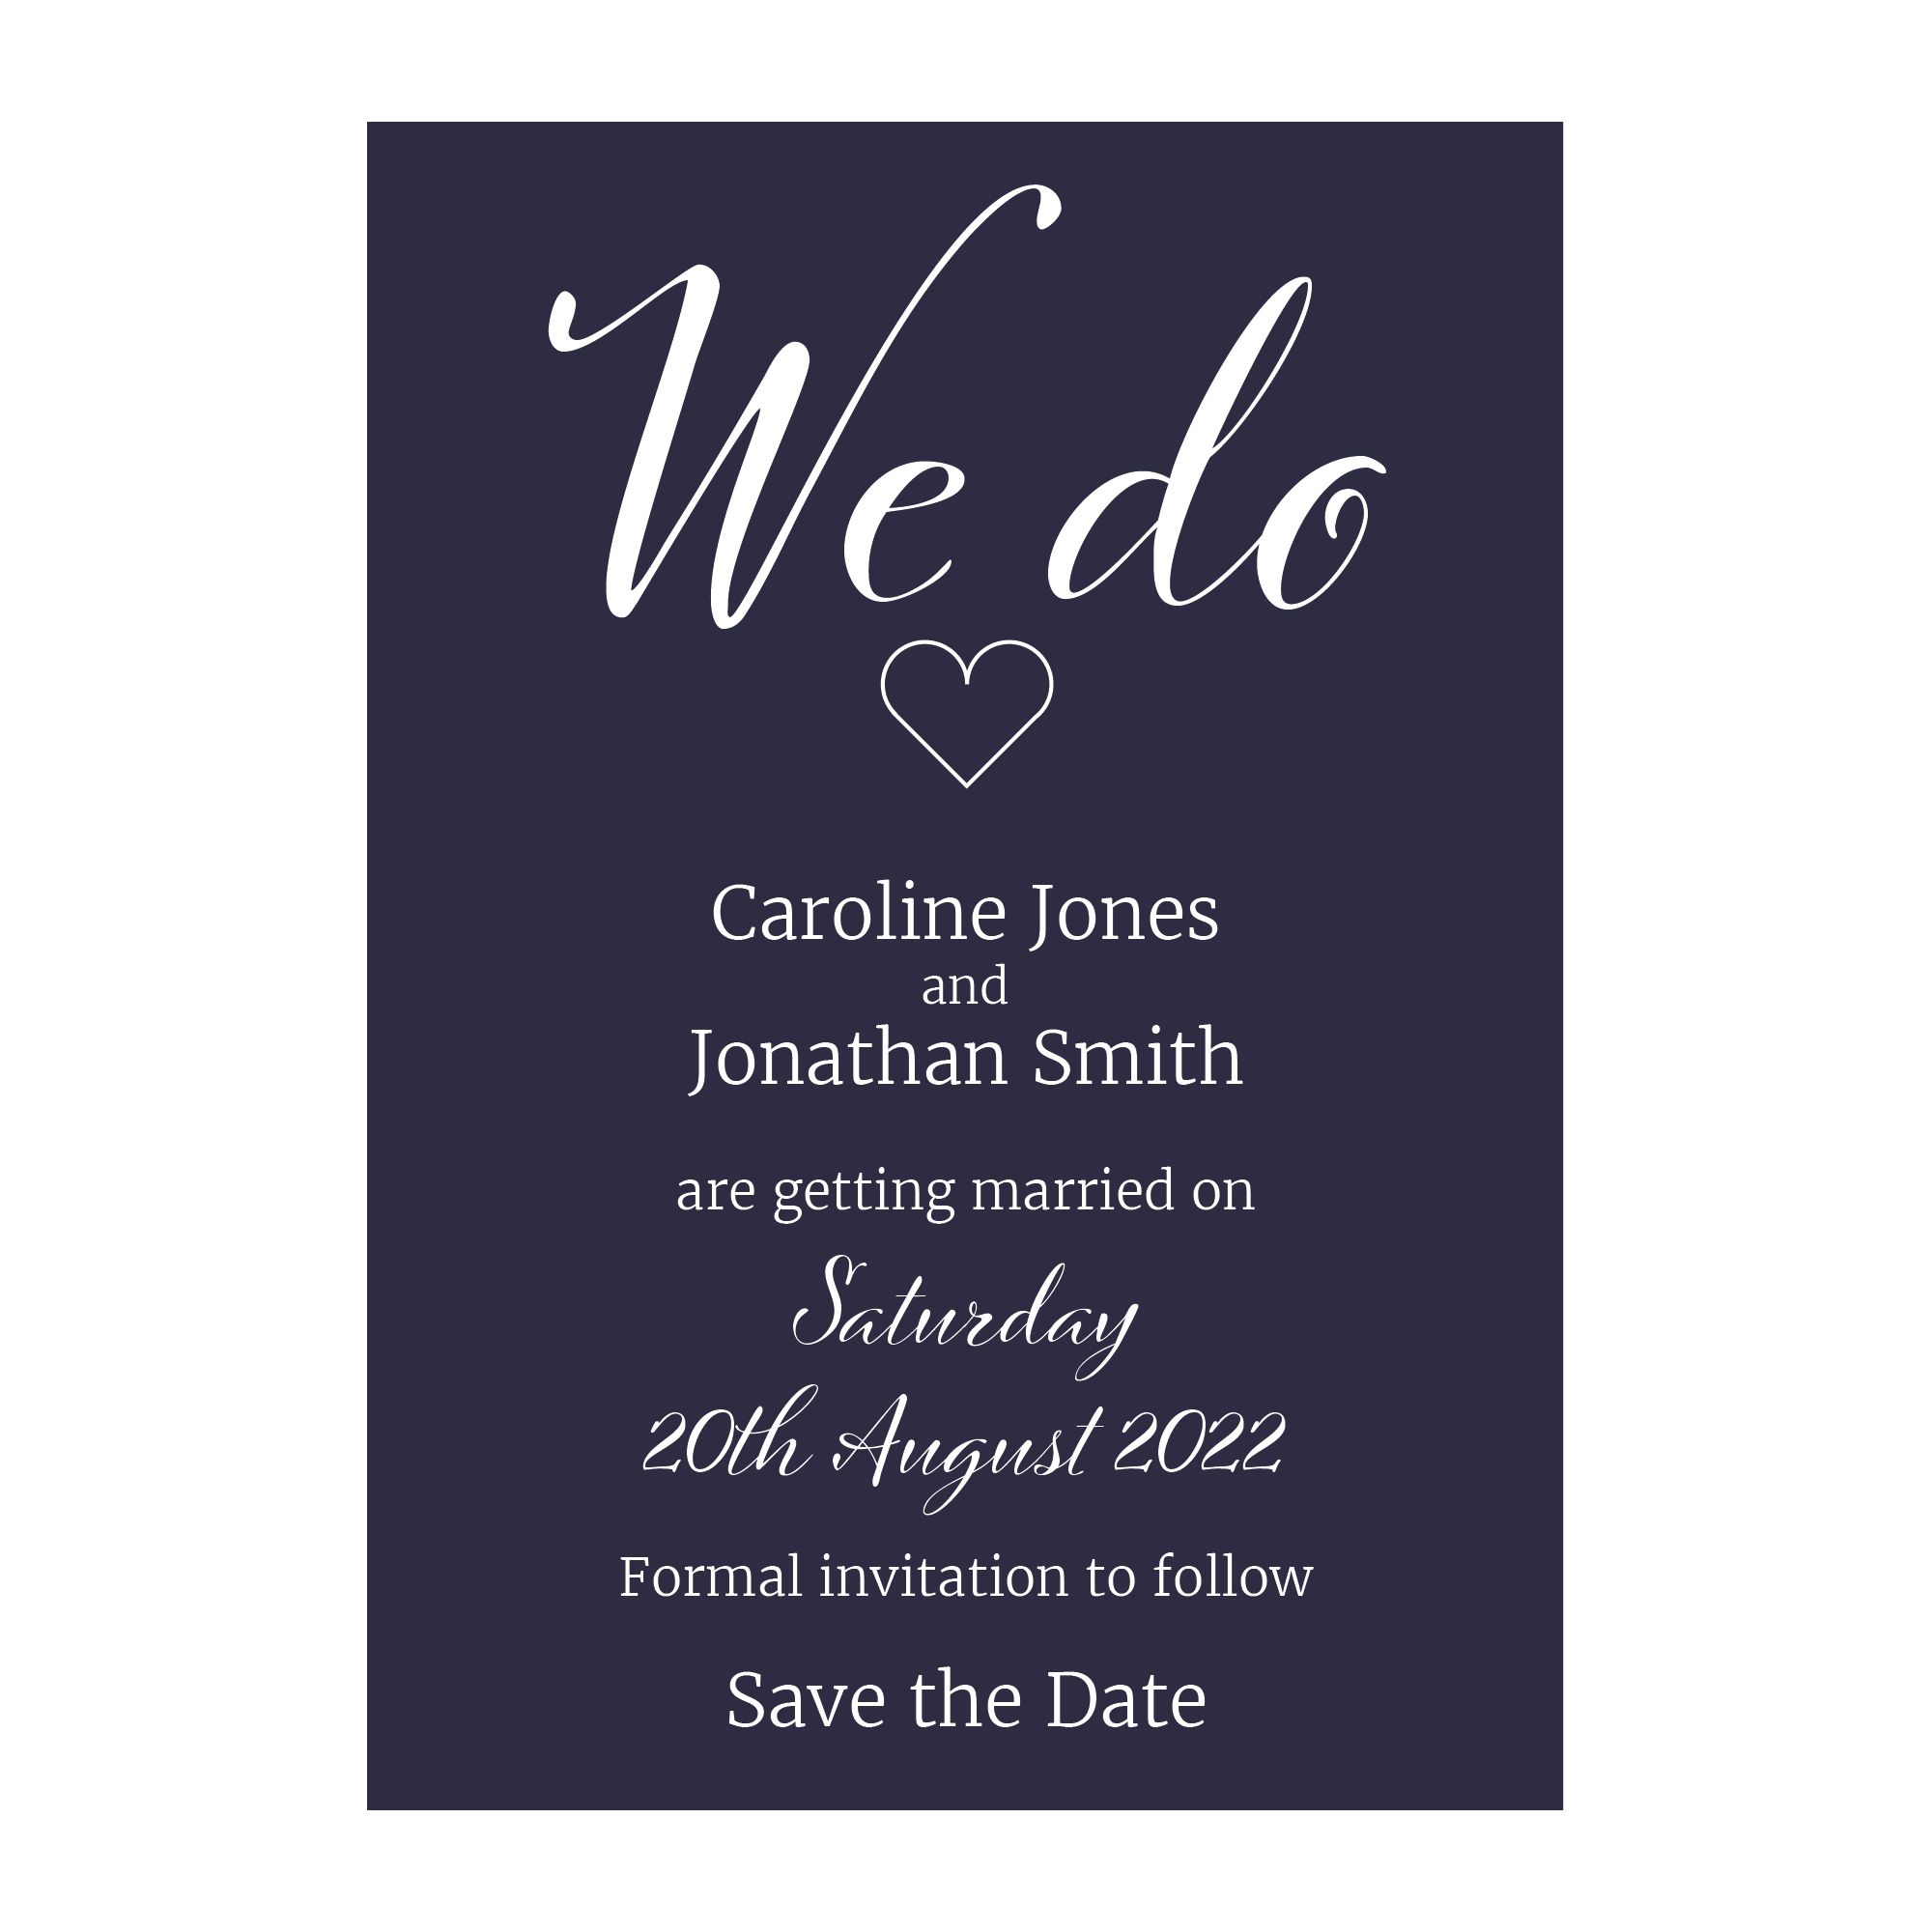 Navy Blue with White Ink We Do Decorative Save the Date Cards